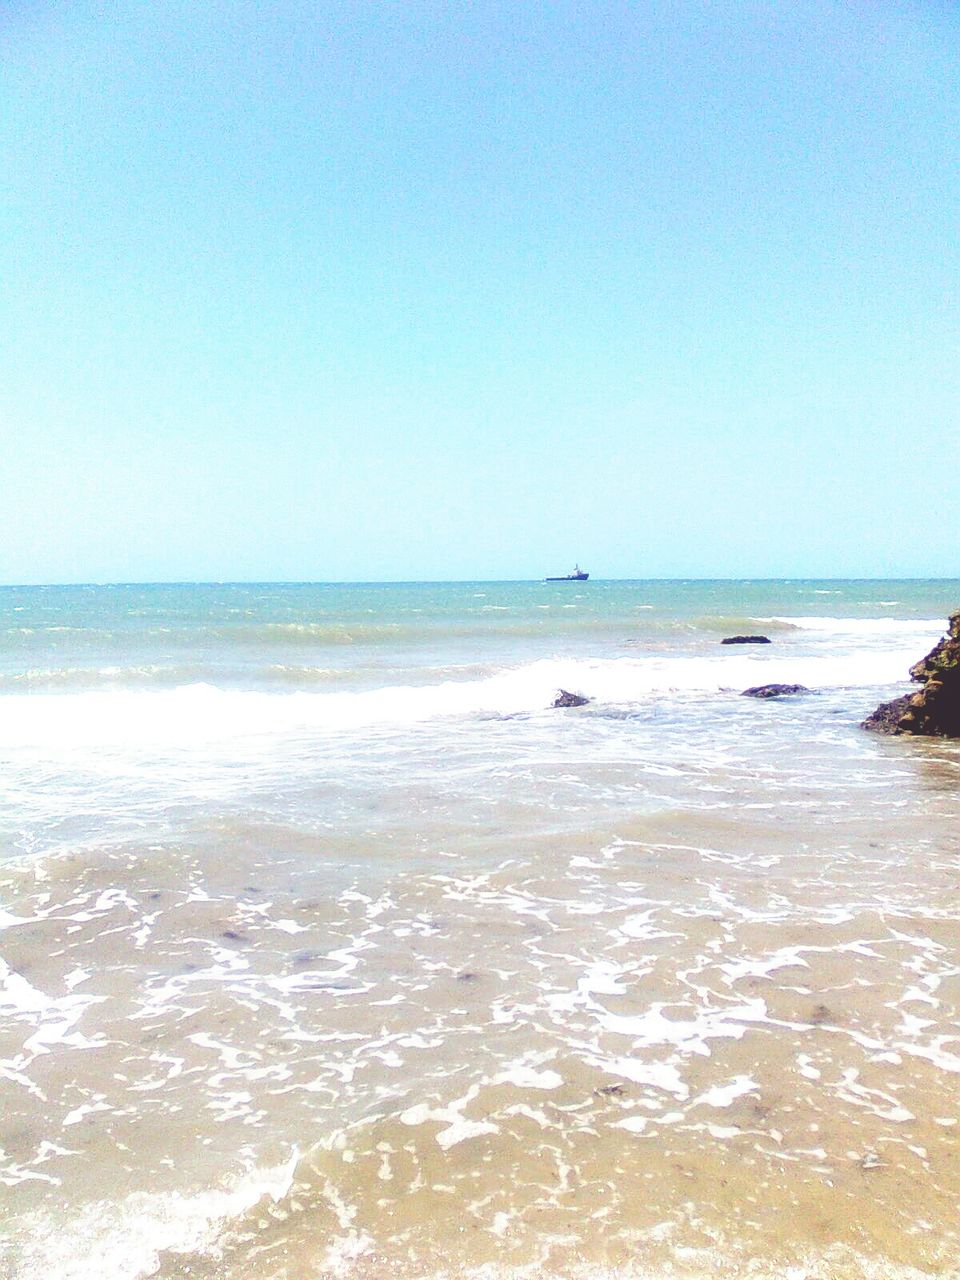 sea, horizon over water, water, beach, scenics, nature, beauty in nature, clear sky, tranquility, copy space, tranquil scene, outdoors, sky, day, wave, sand, travel destinations, vacations, blue, no people